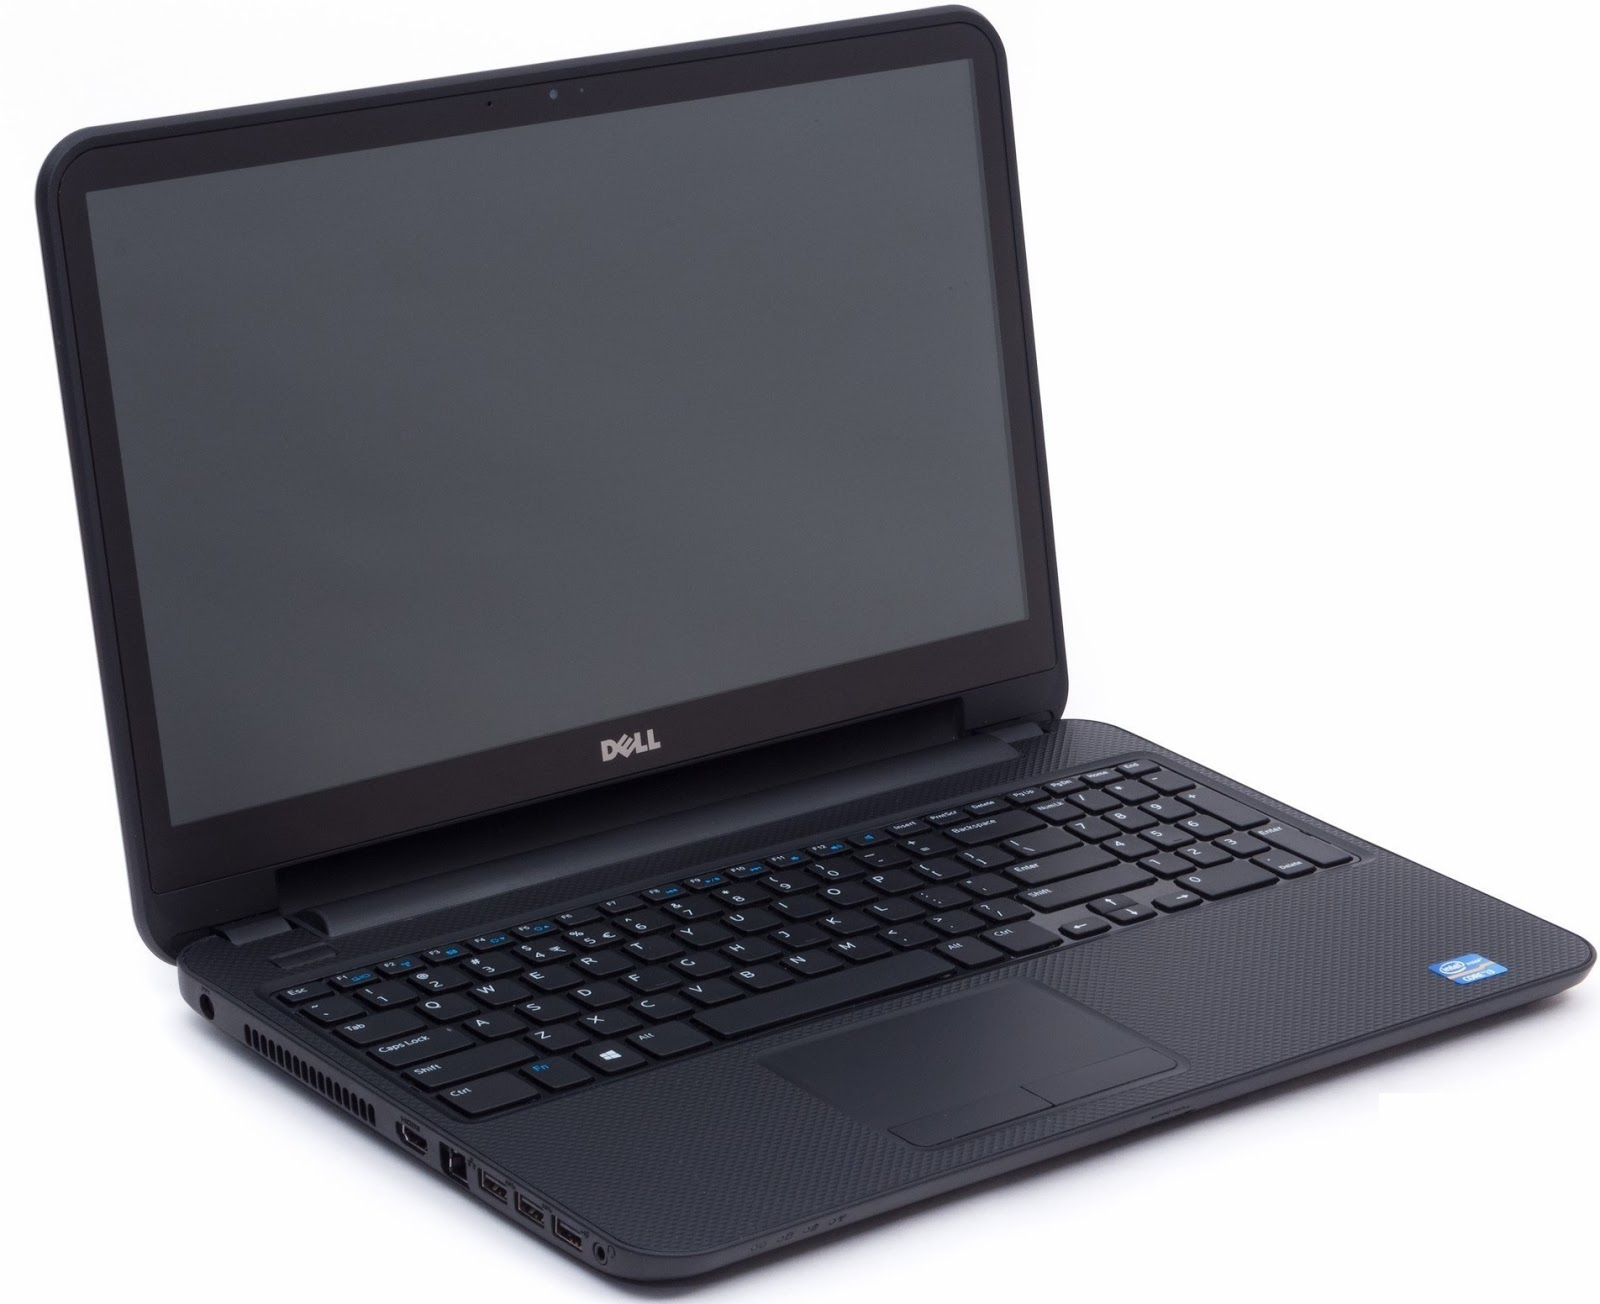 Dell Inspiron 3521 Drivers For Windows 7 (64bit)